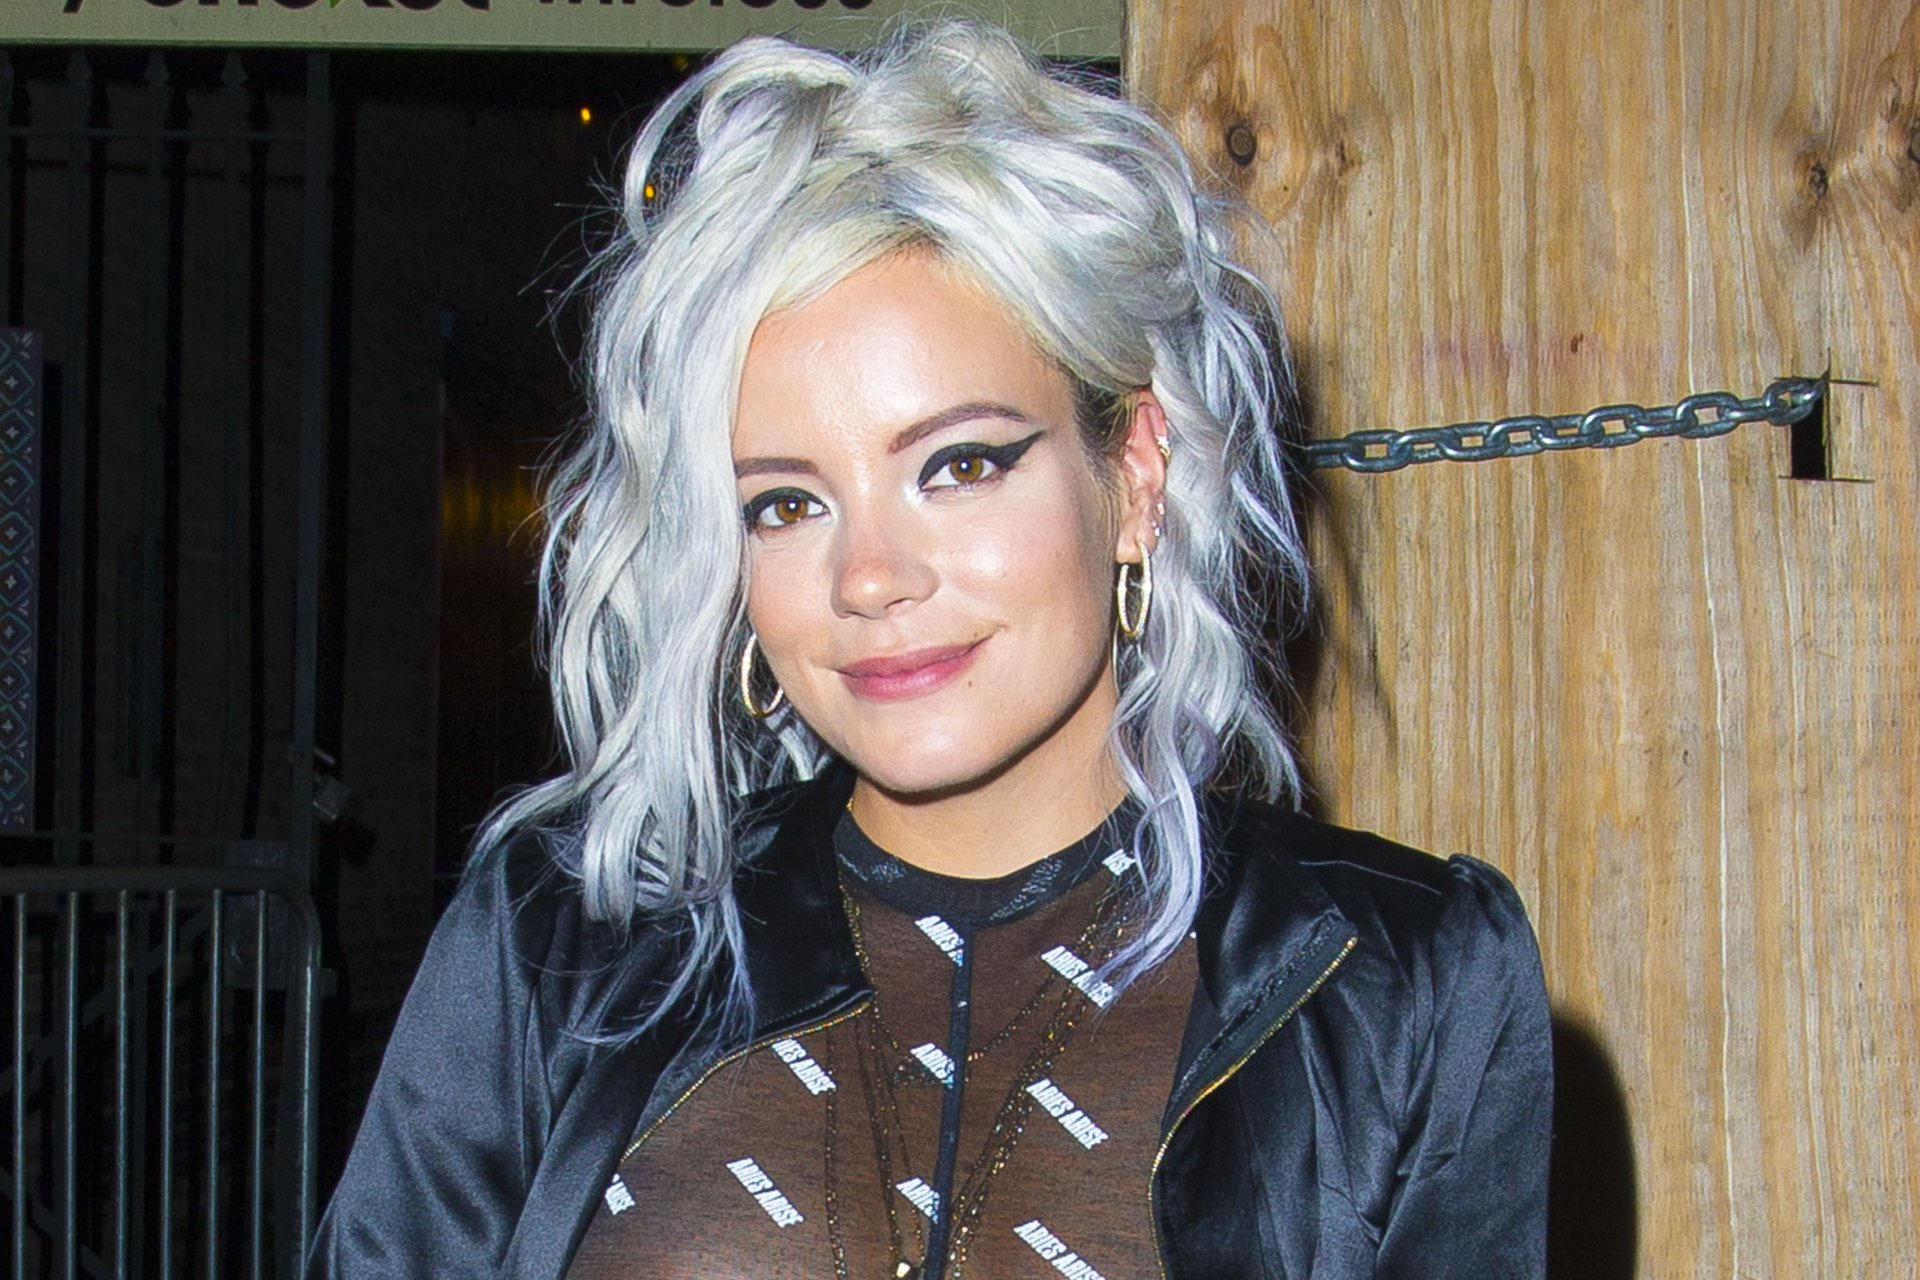 Lily-Allen-See-Through-TheFappeningBlog.com-11.jpg